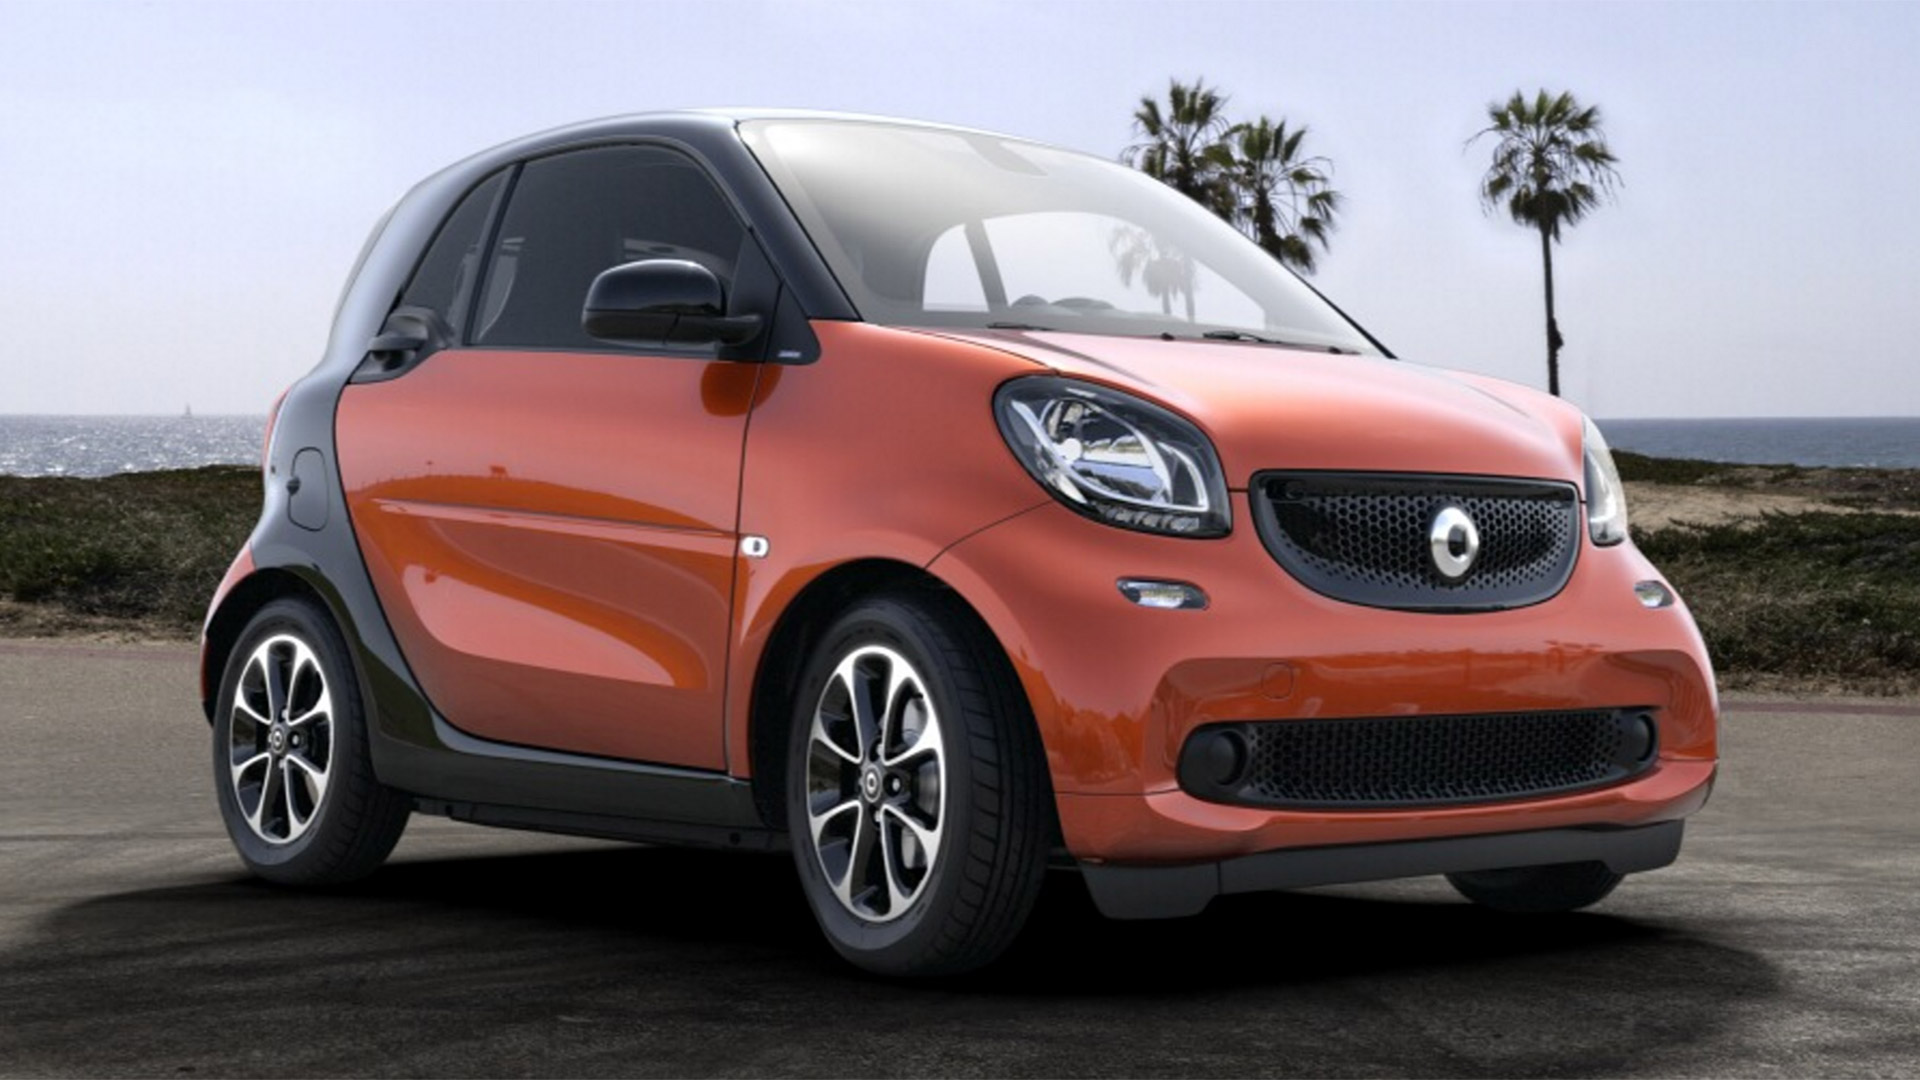 2017 Smart Fortwo 2-door hatchback